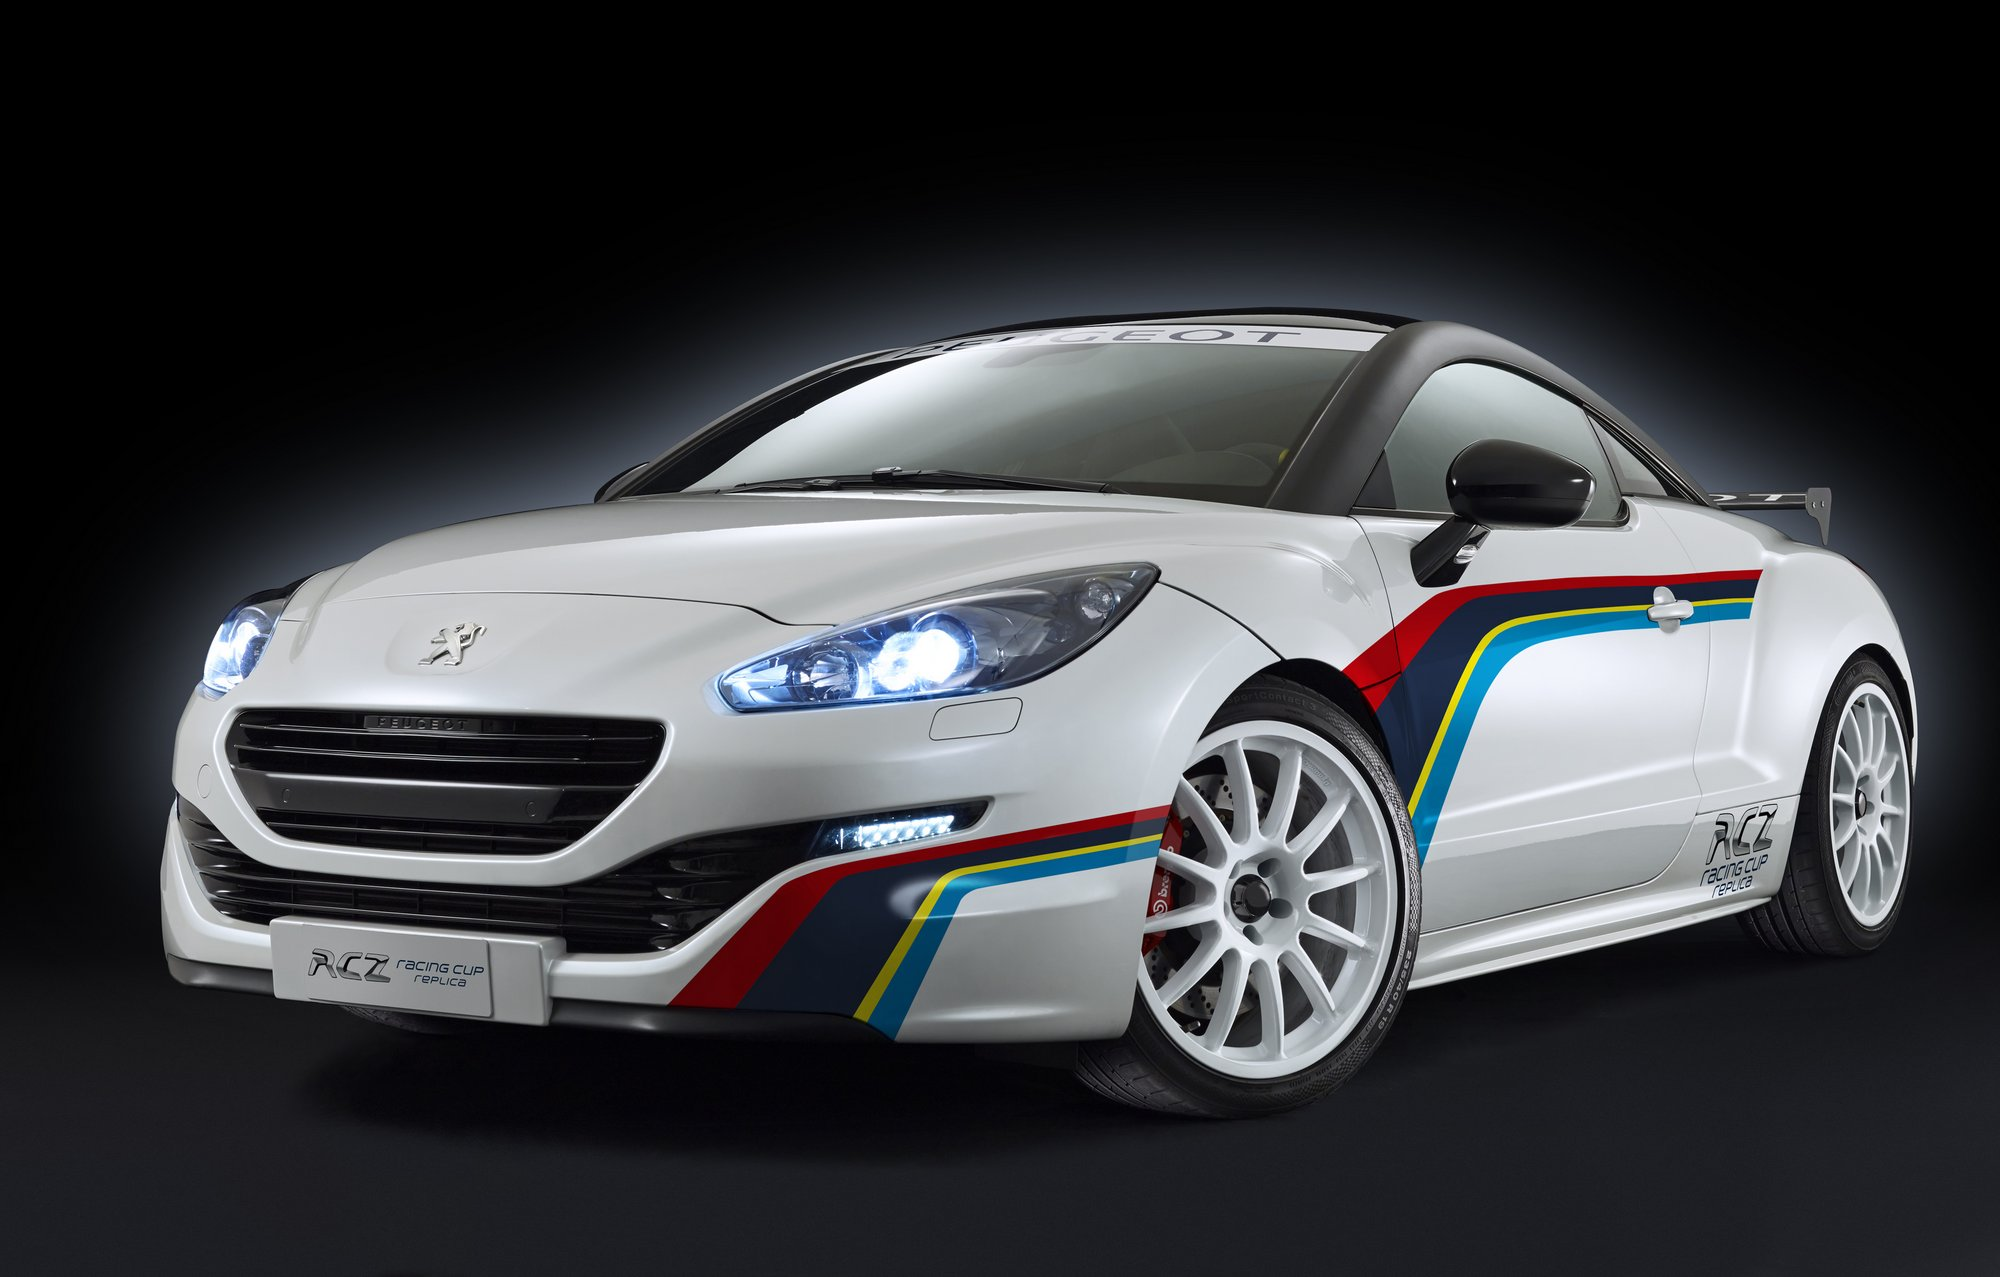 peugeot rcz racing cup replica. Black Bedroom Furniture Sets. Home Design Ideas